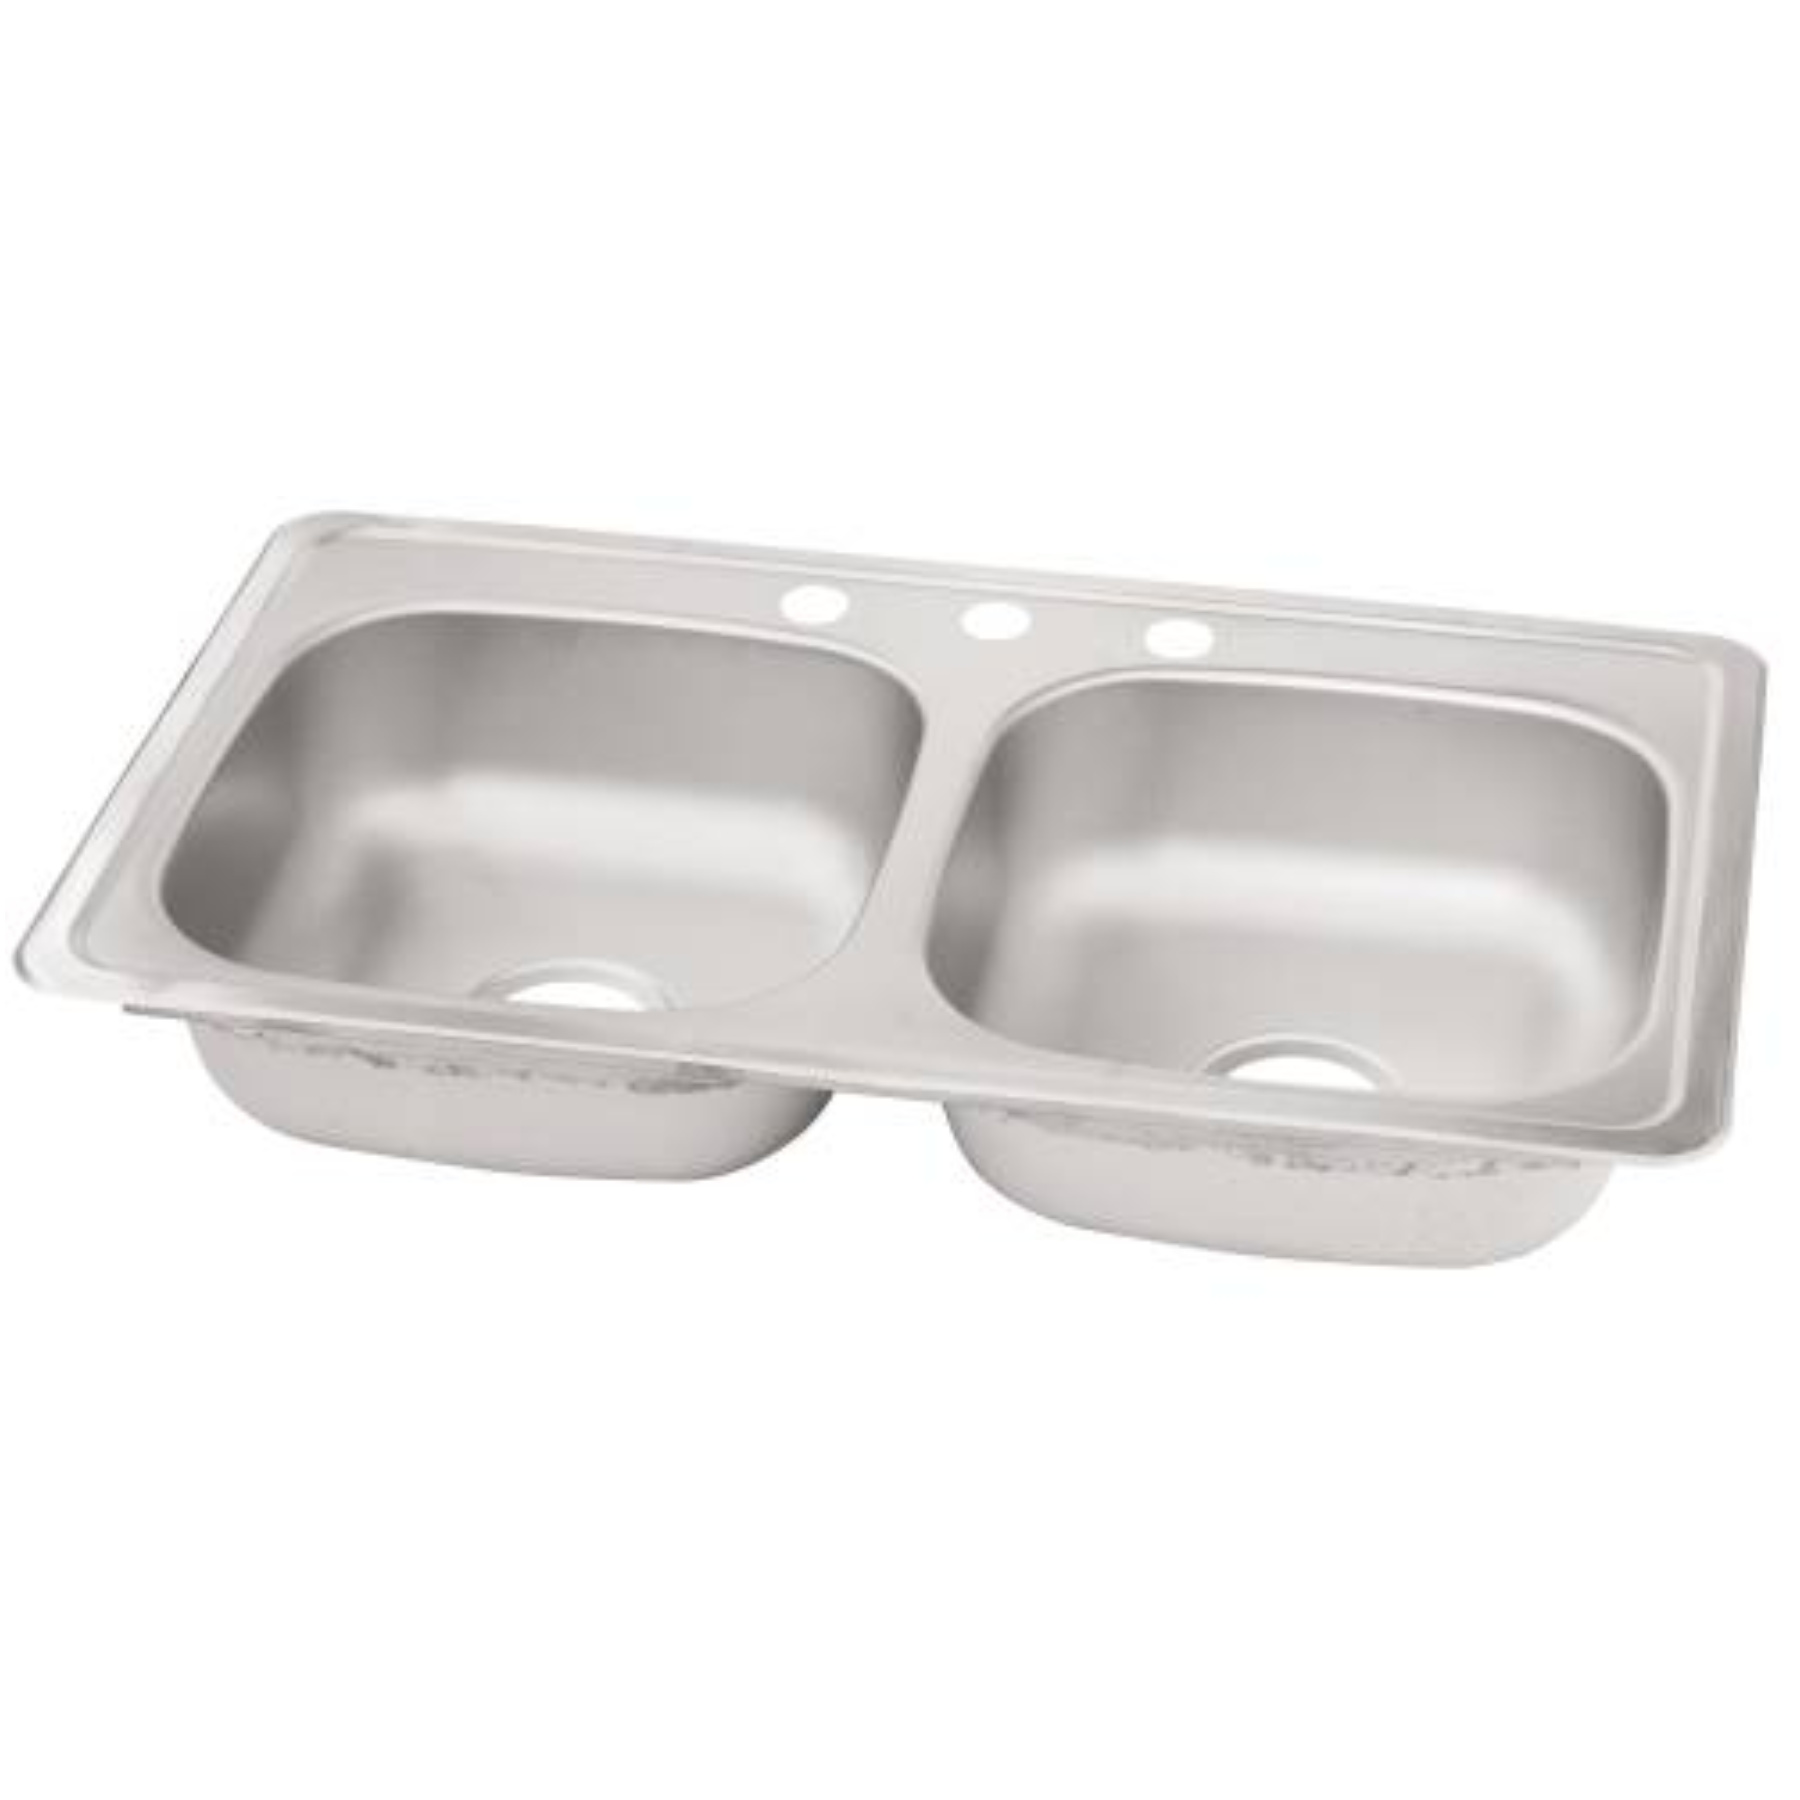 ELKAY� KITCHEN SINK, STAINLESS STEEL, 33X22X6 IN.